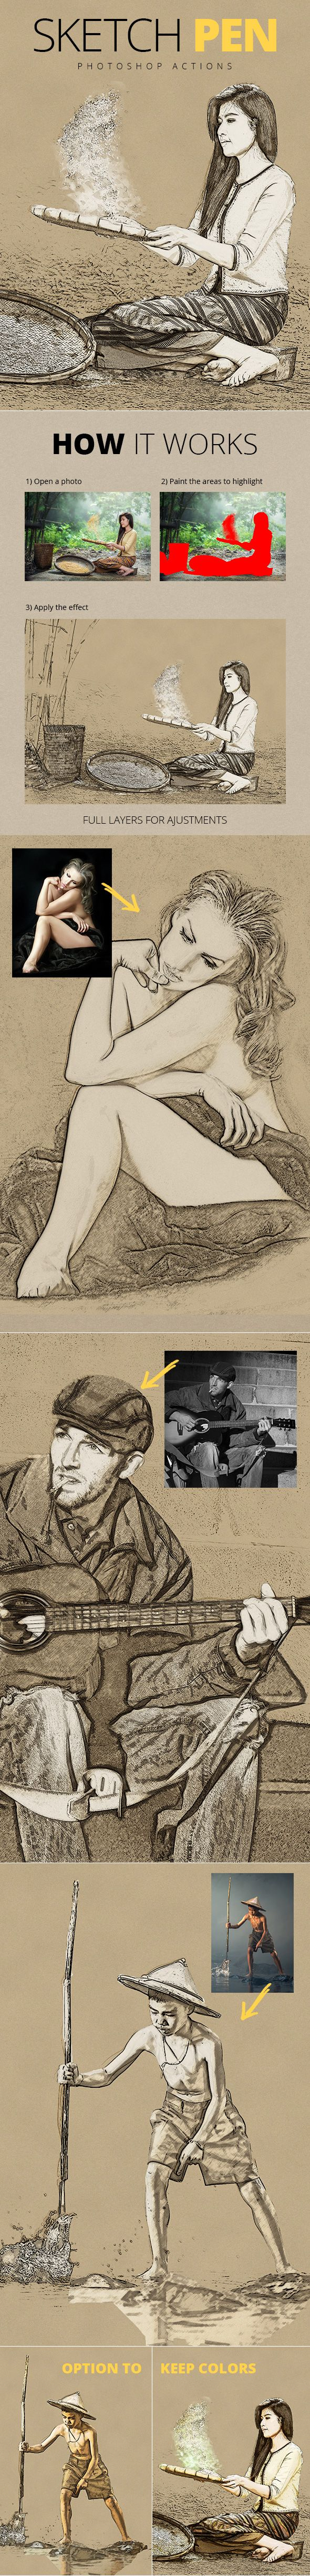 Sketch Pen Photoshop Actions - Photo Effects Actions. Download here: https://graphicriver.net/item/sketch-pen-photoshop-actions/18943311?ref=yinkira